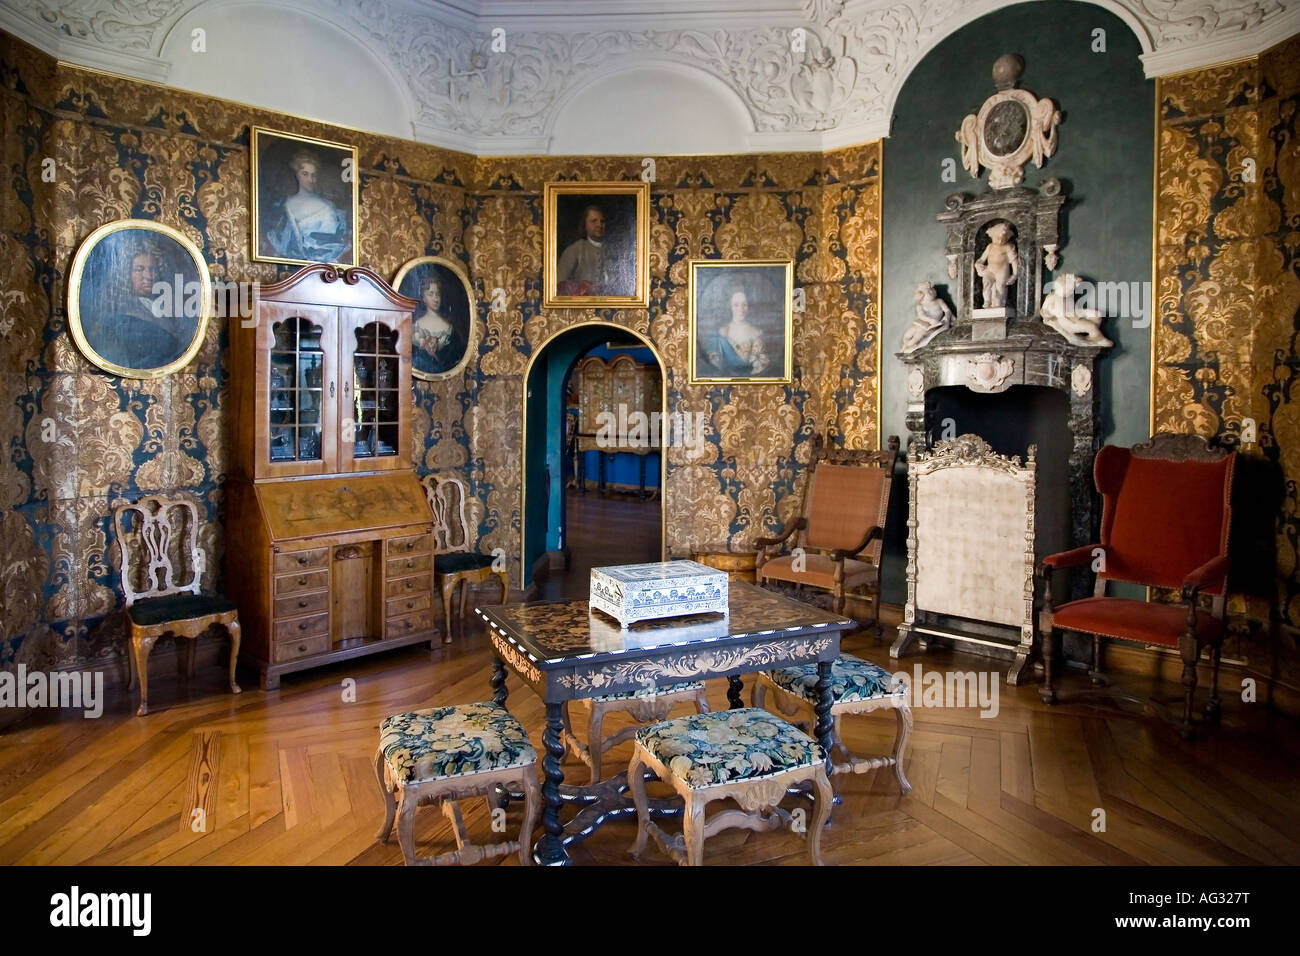 The museum of national history at frederiksborg castle copenhagen - Old Interior At The Museum Of National History At Frederiksborg Castle Stock Image